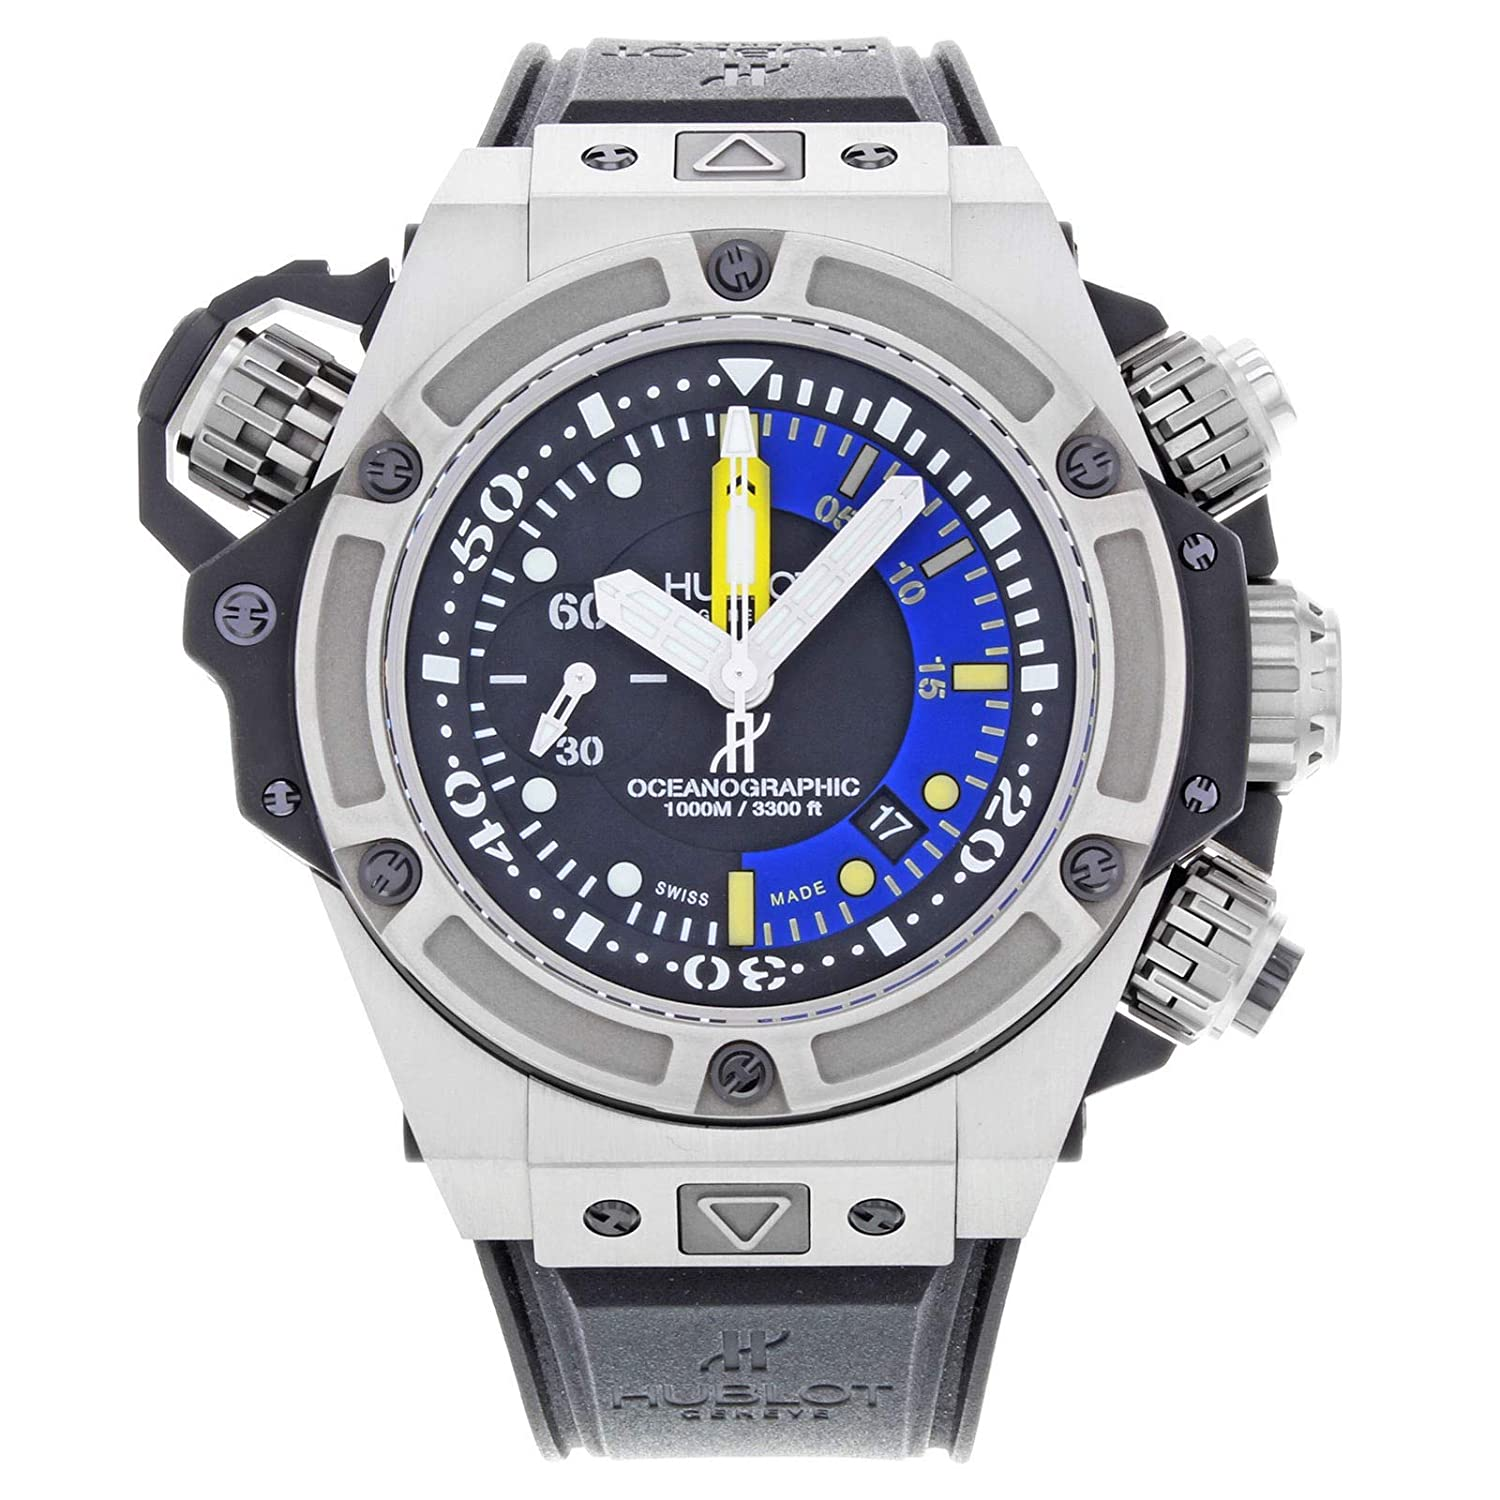 Amazon.com: Hublot Big Bang Automatic-self-Wind Male Watch 732.NX.1127.RX (Certified Pre-Owned): Hublot: Watches